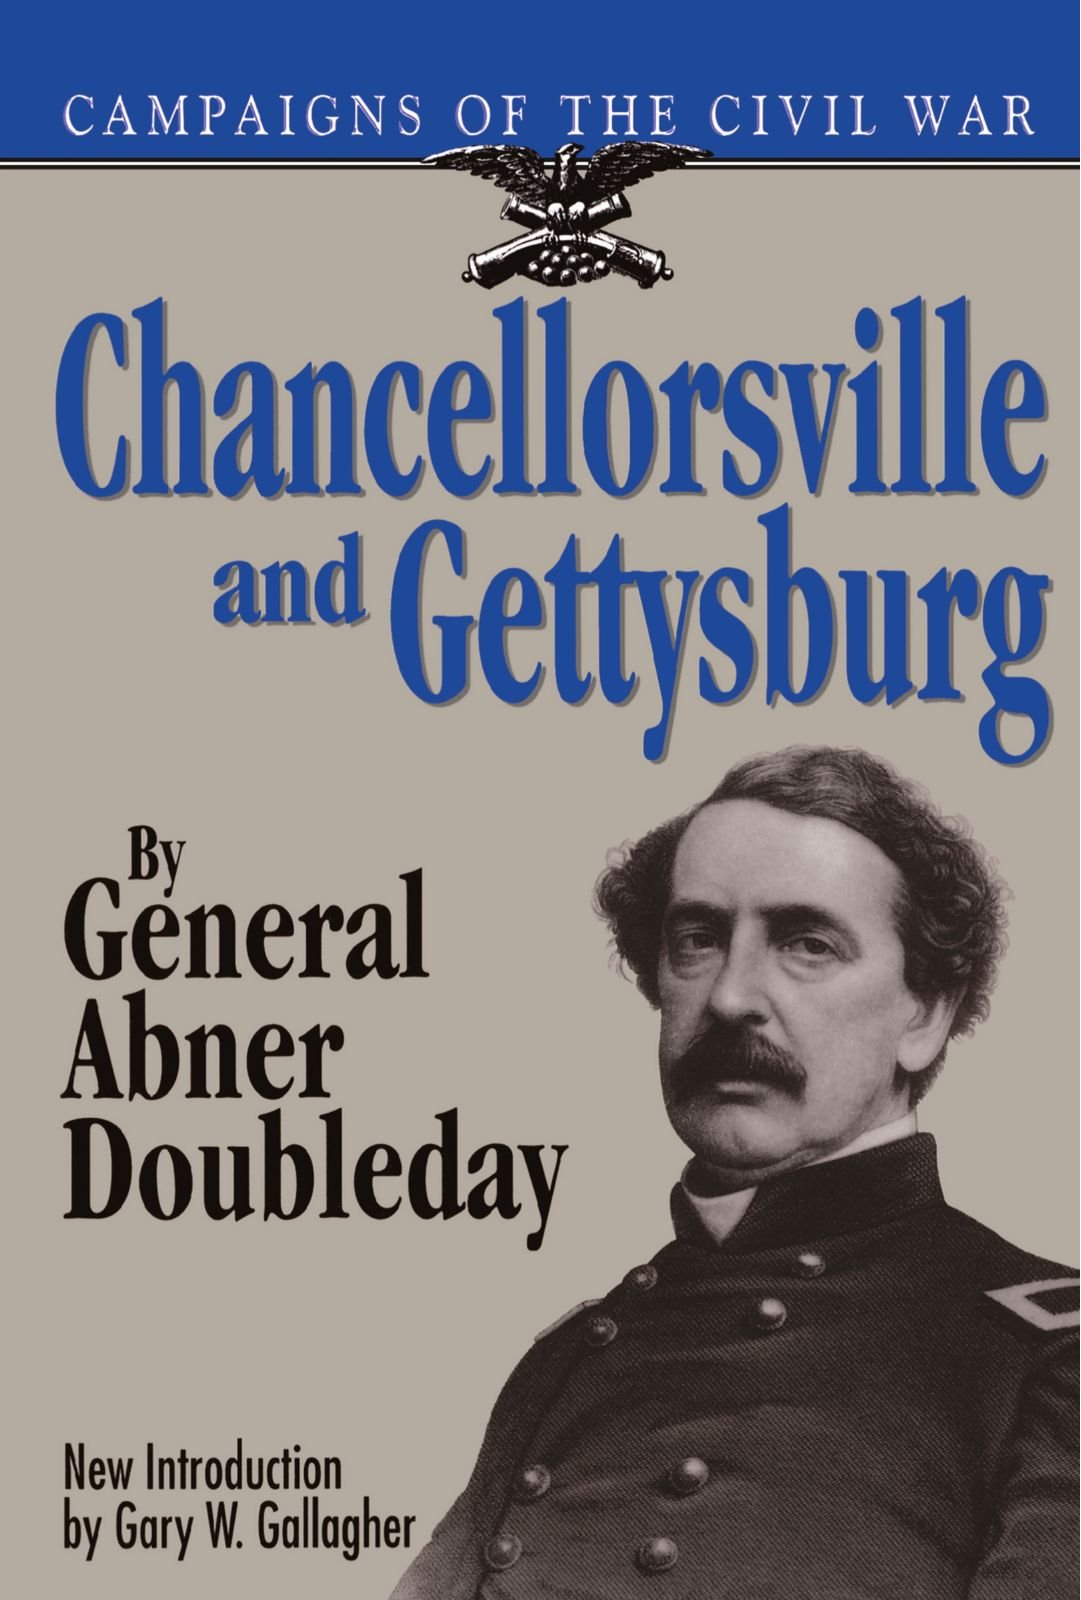 Chancellorsville And Gettysburg (Campaigns of the Civil War) PDF